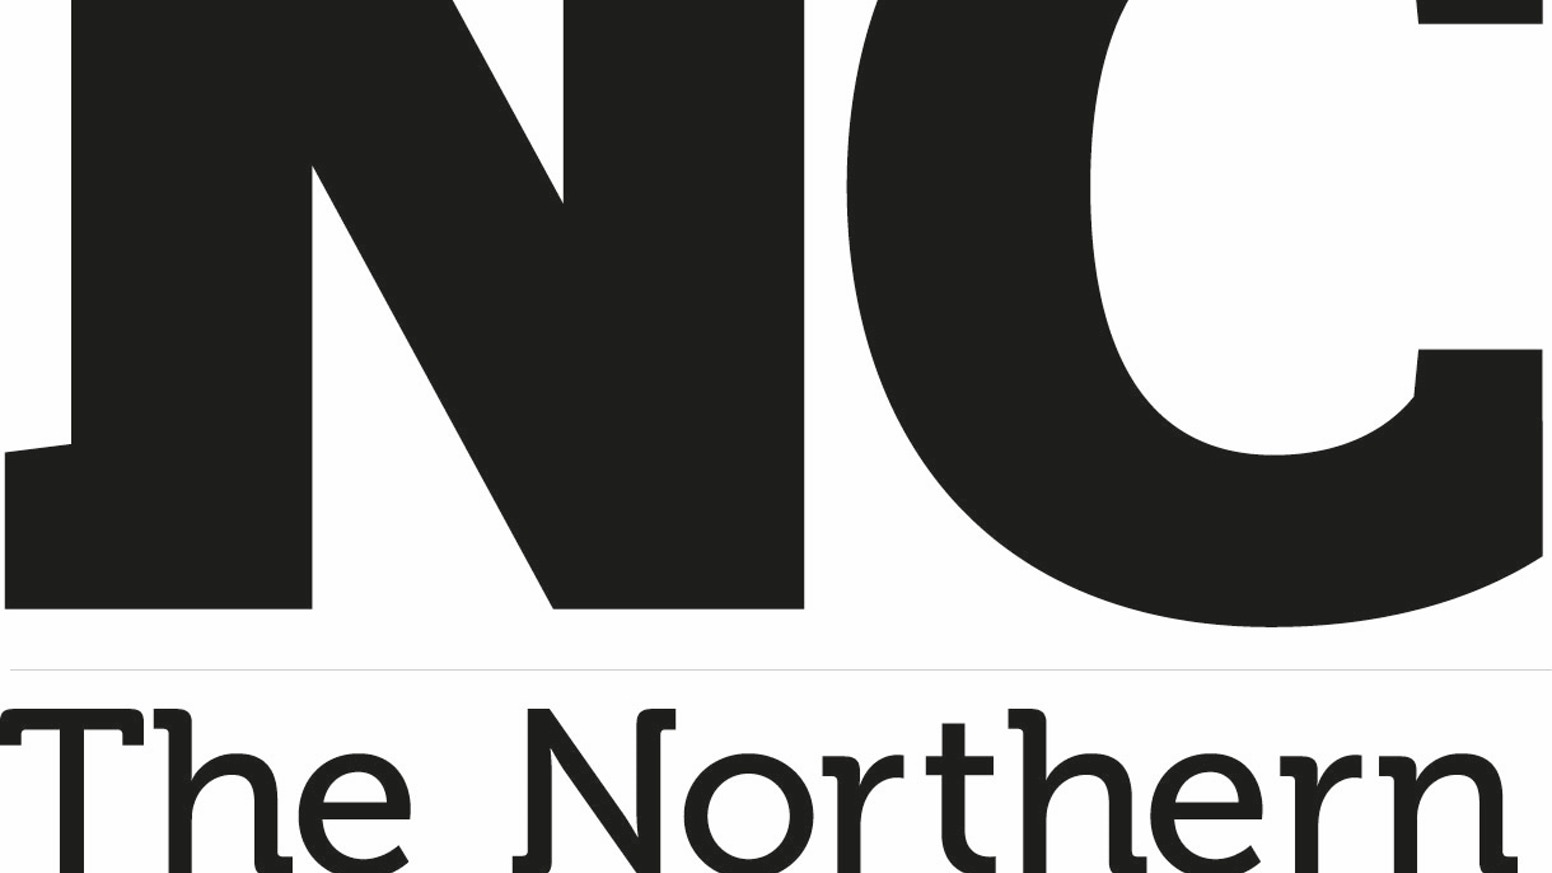 Building a home for long-form journalism in the north east of England